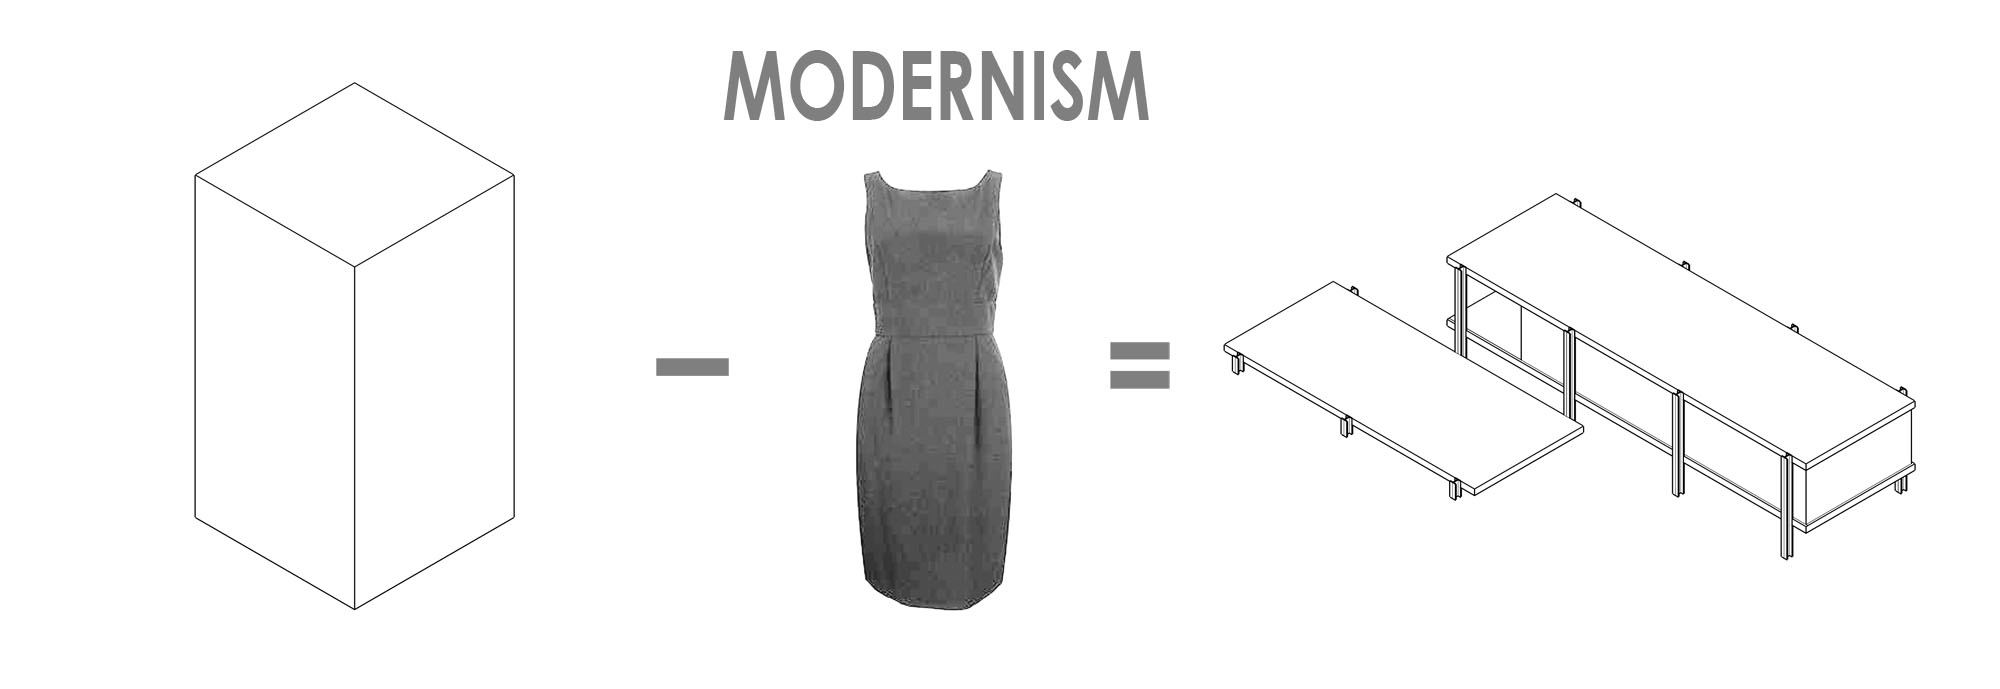 modernism and postmodernism in product design essay Targeting specific groups of consumers has meant that design has one specific product but can be reused for an essay on 'what is post-modernism.